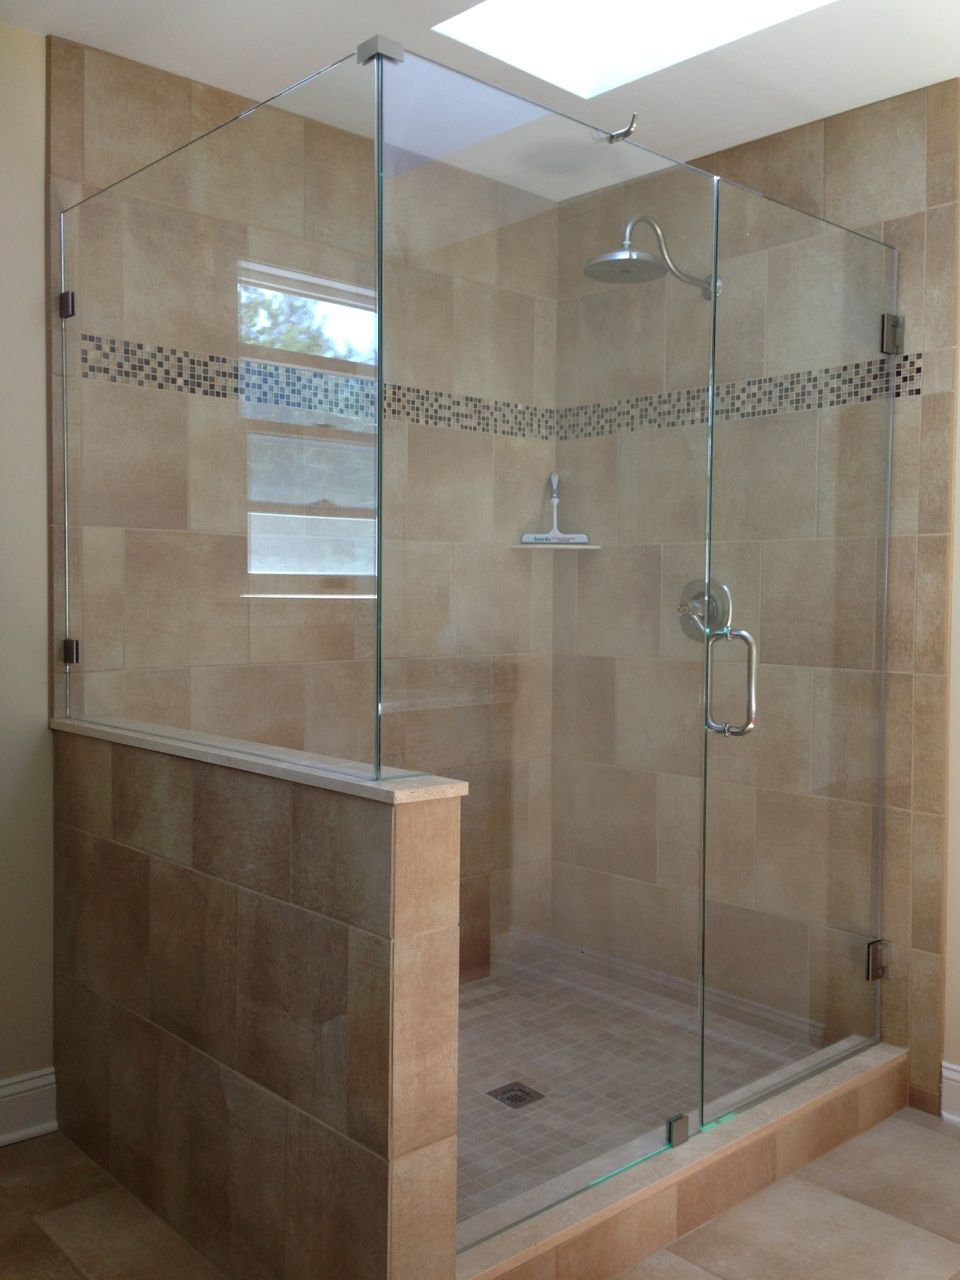 Do We Put A Half Wall Showerman Frameless Shower Door Small Bathroom Makeover Frameless Shower Doors Half Wall Shower